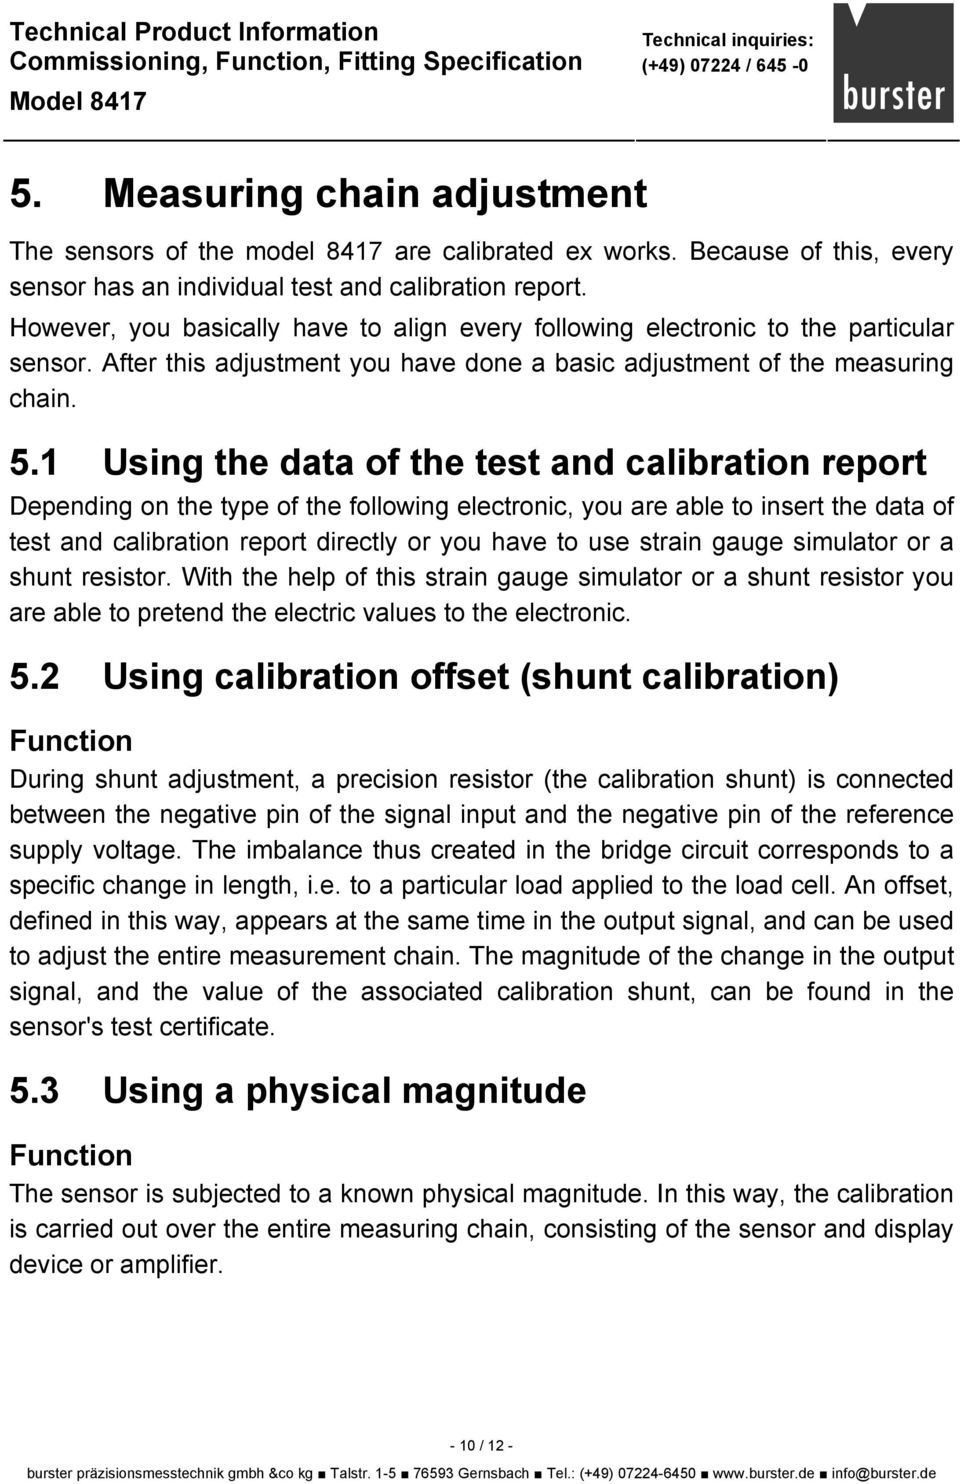 1 Using the data of the test and calibration report Depending on the type of the following electronic, you are able to insert the data of test and calibration report directly or you have to use